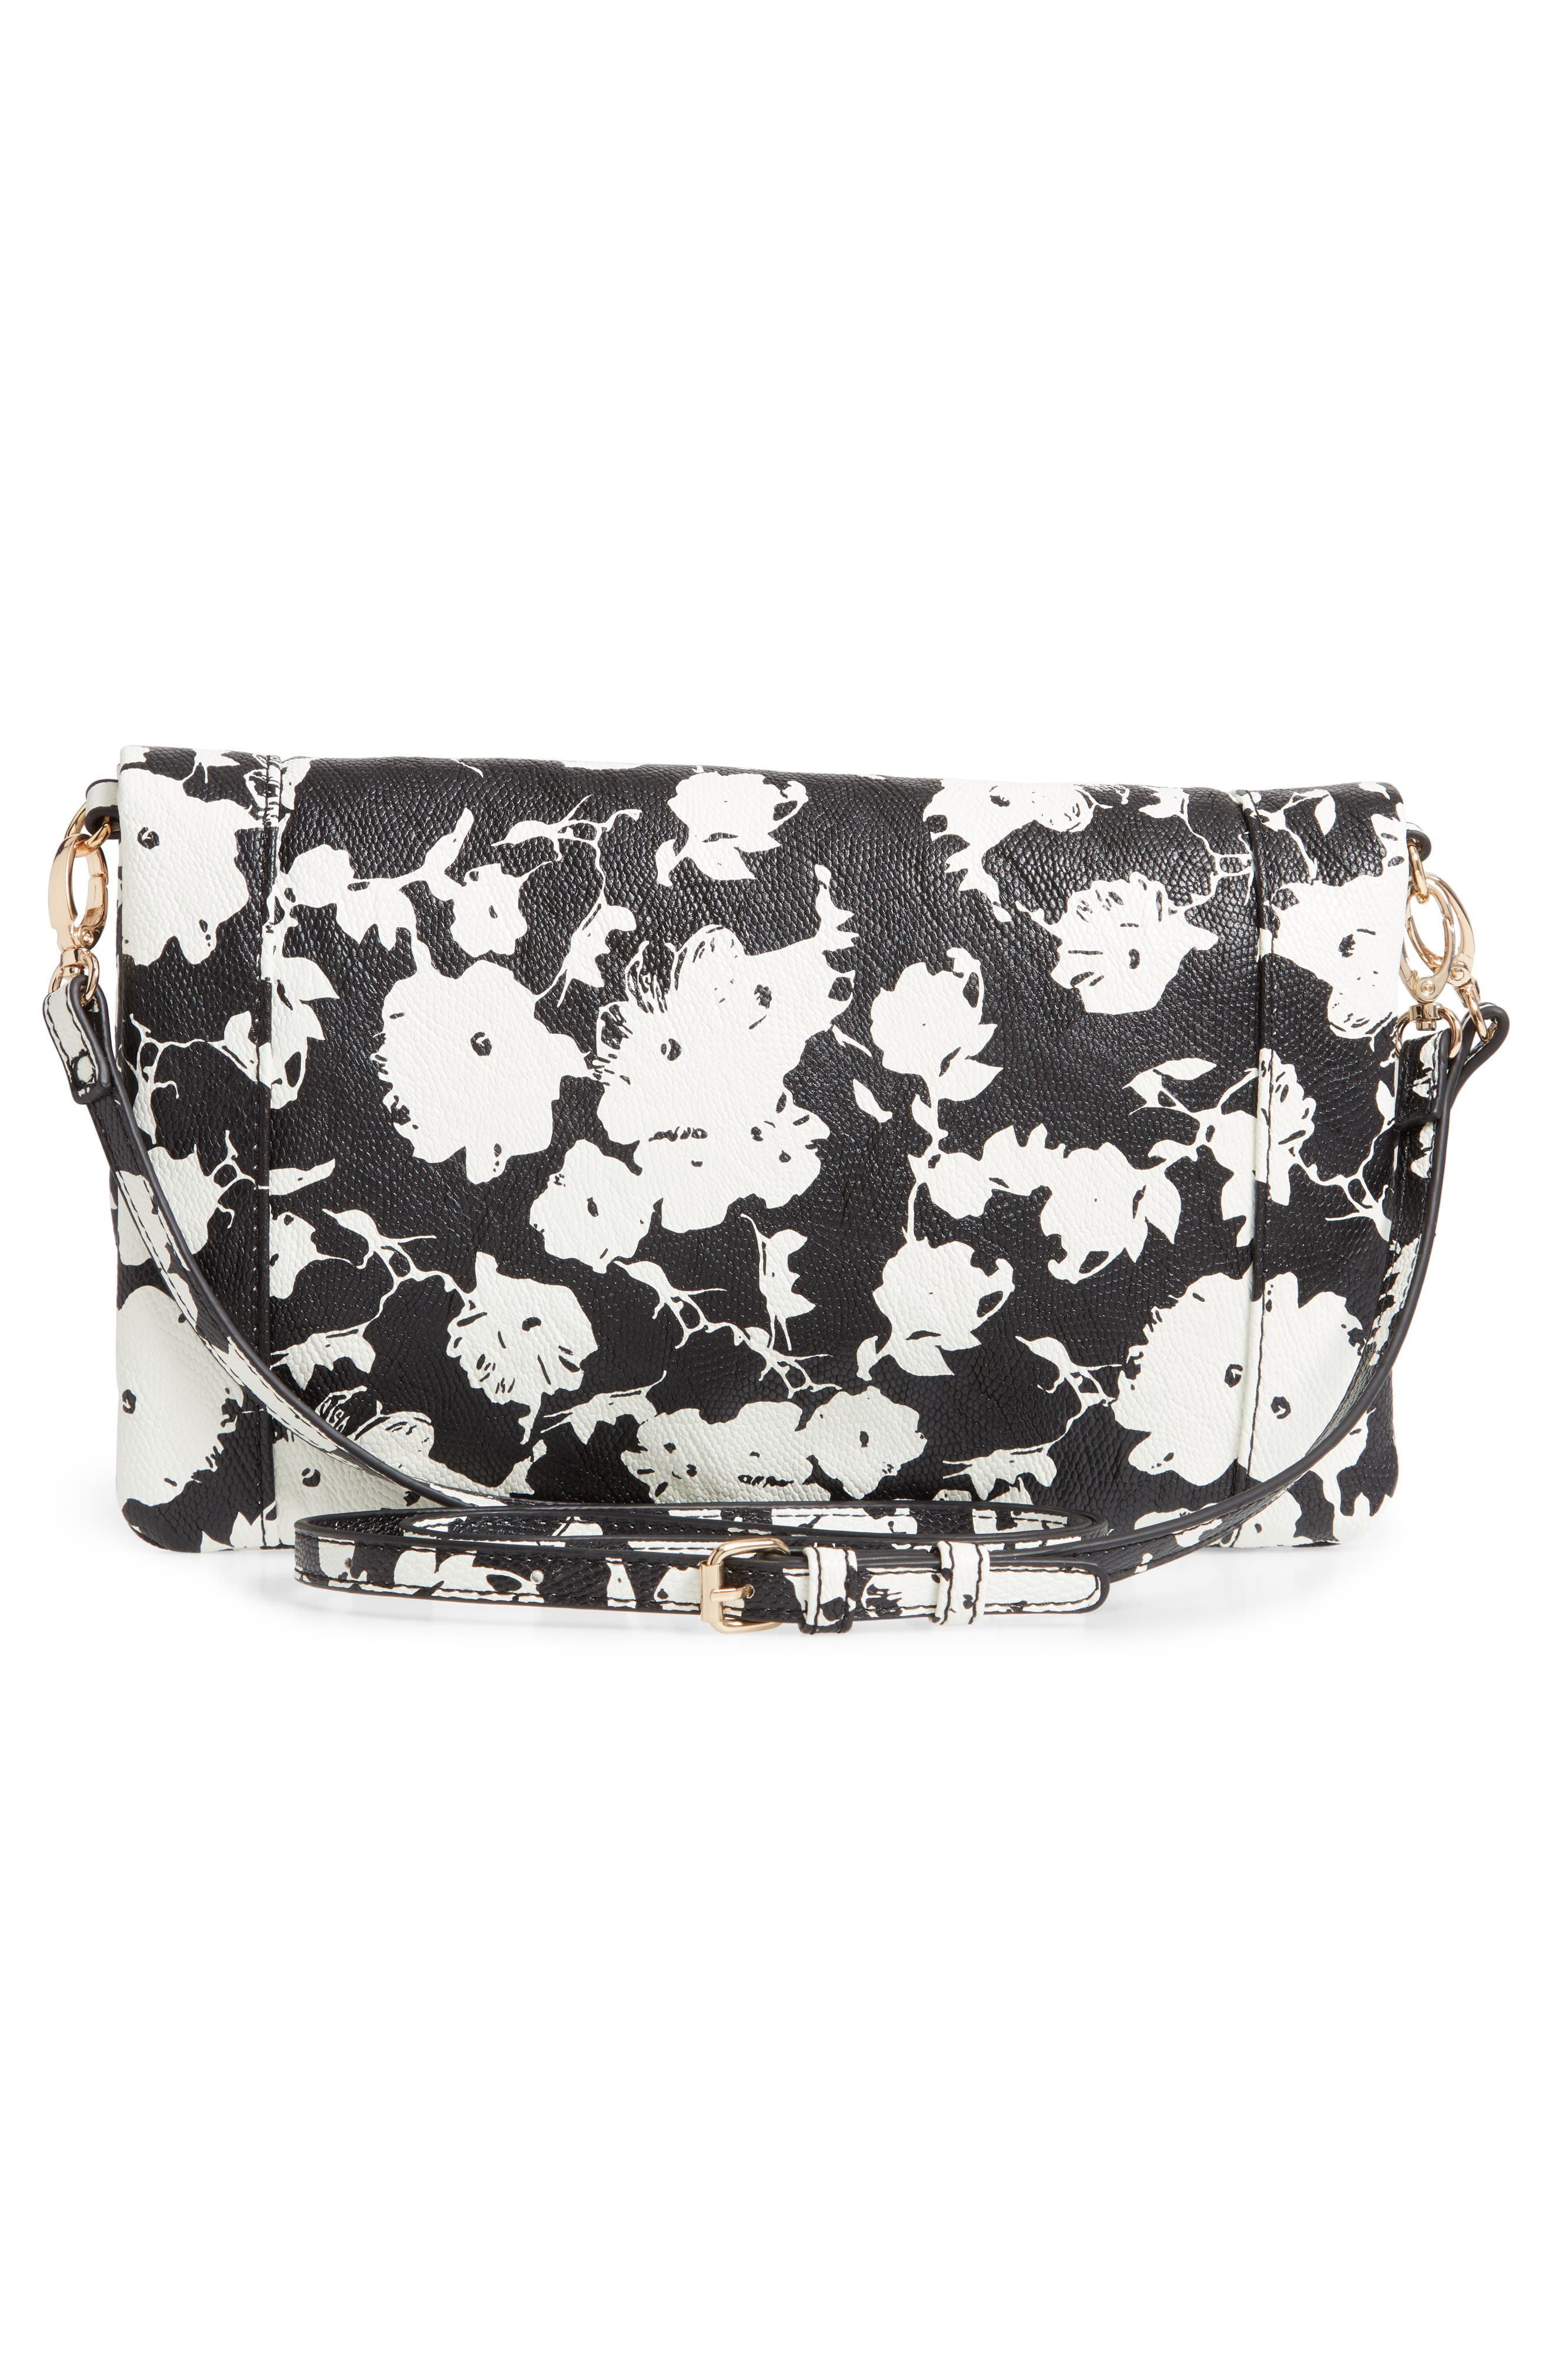 SOLE SOCIETY, 'Tasia' Print Foldover Clutch, Alternate thumbnail 4, color, BLACK FLORAL